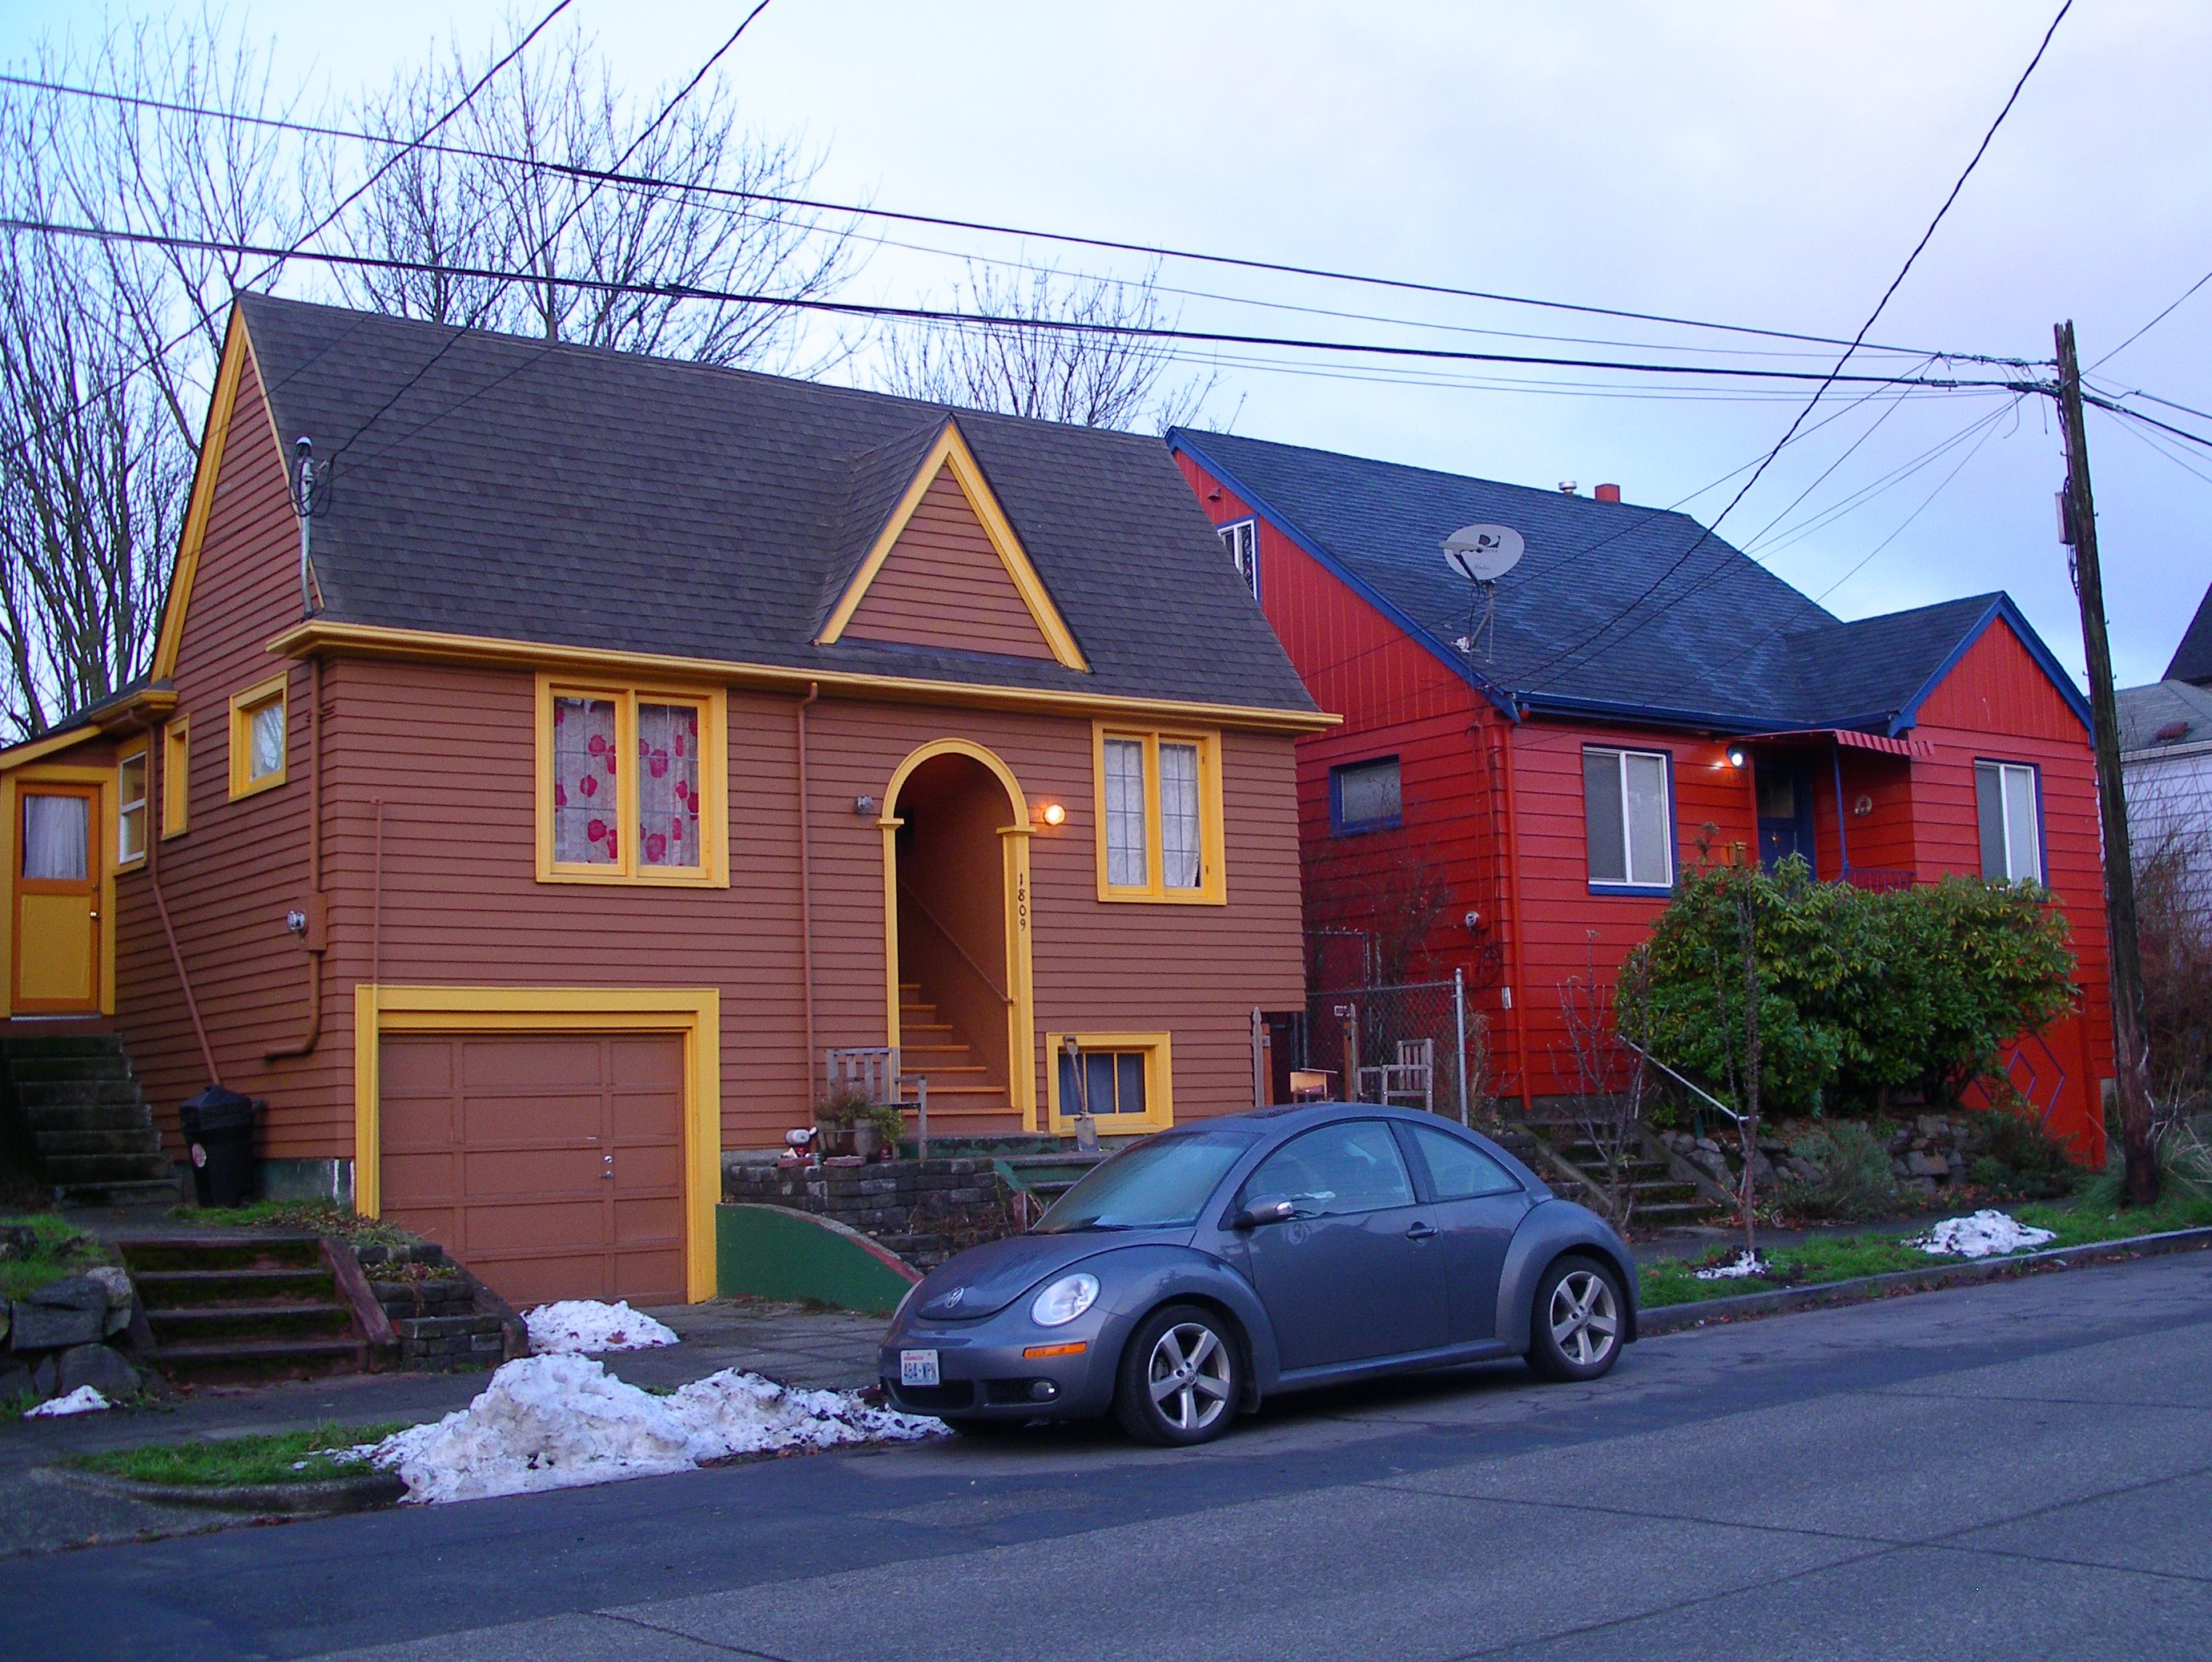 Two houses shot from the street, one brown with gold trim, the other red with blue trim. The brown house is closer, and has an arched entryway.